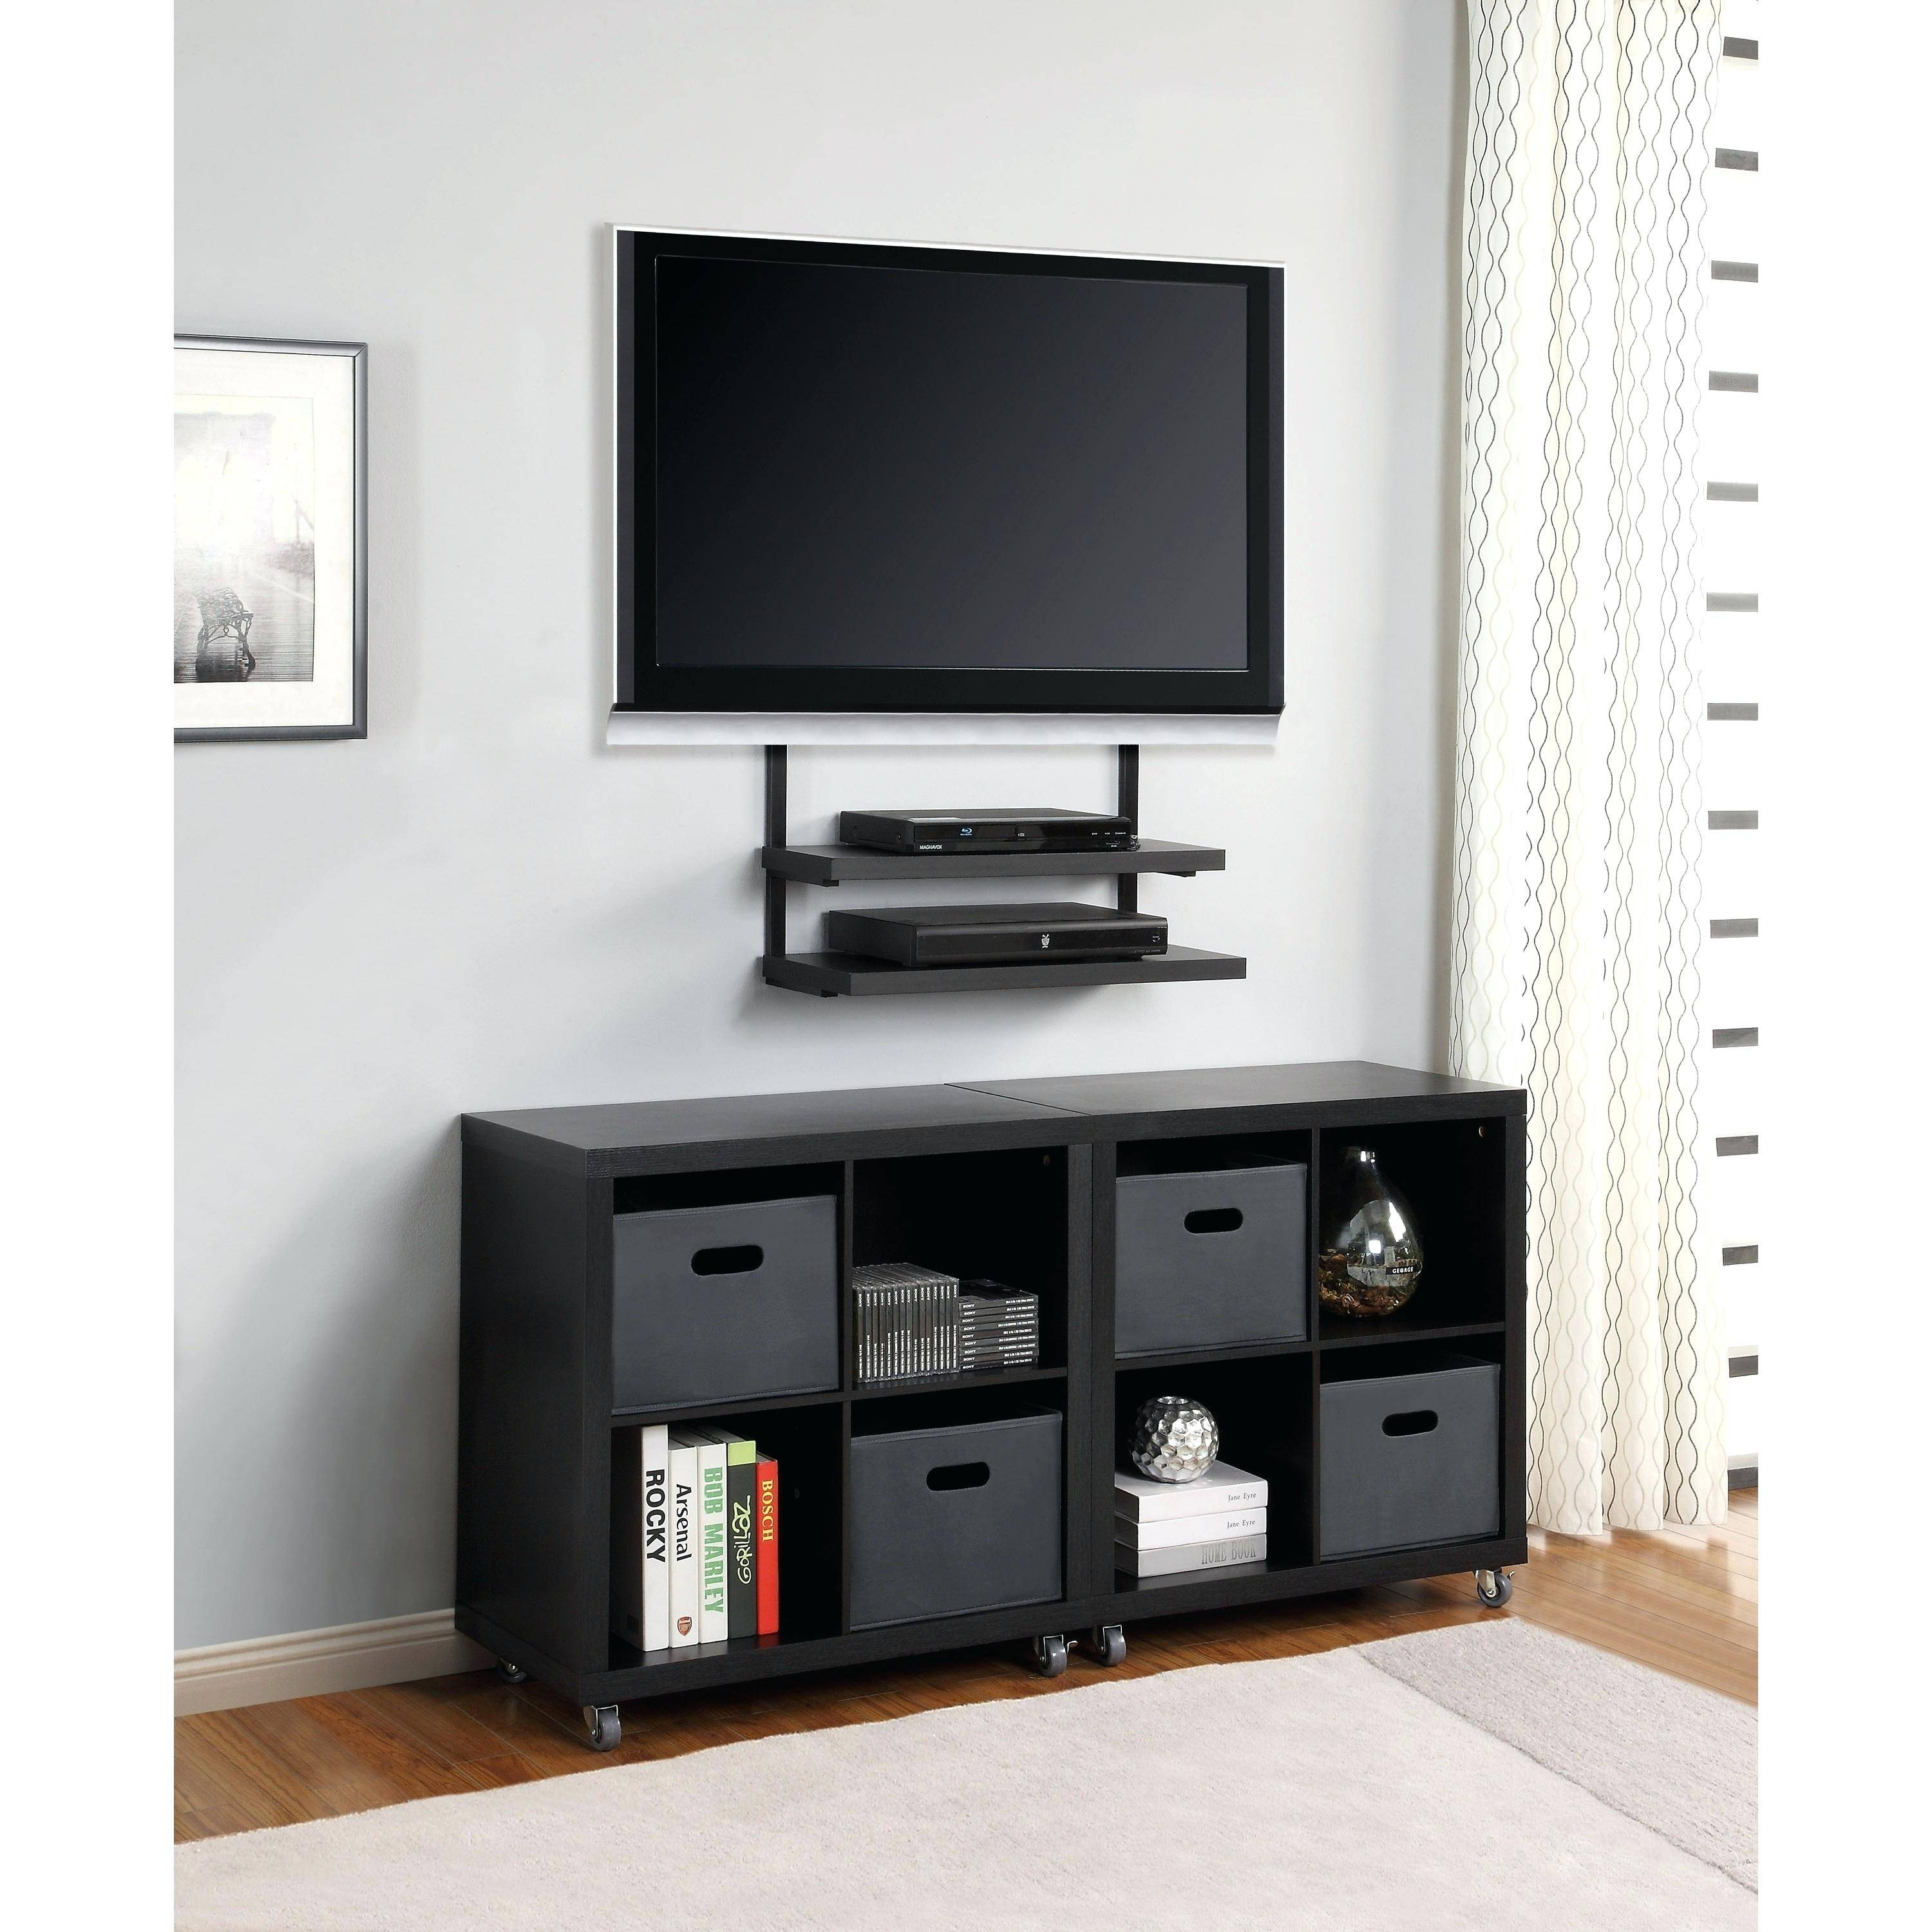 Tv Stand : Contemporary Tv Stands Tv Stands Tempered Glass Tv Inside Glass Tv Cabinets (View 11 of 15)